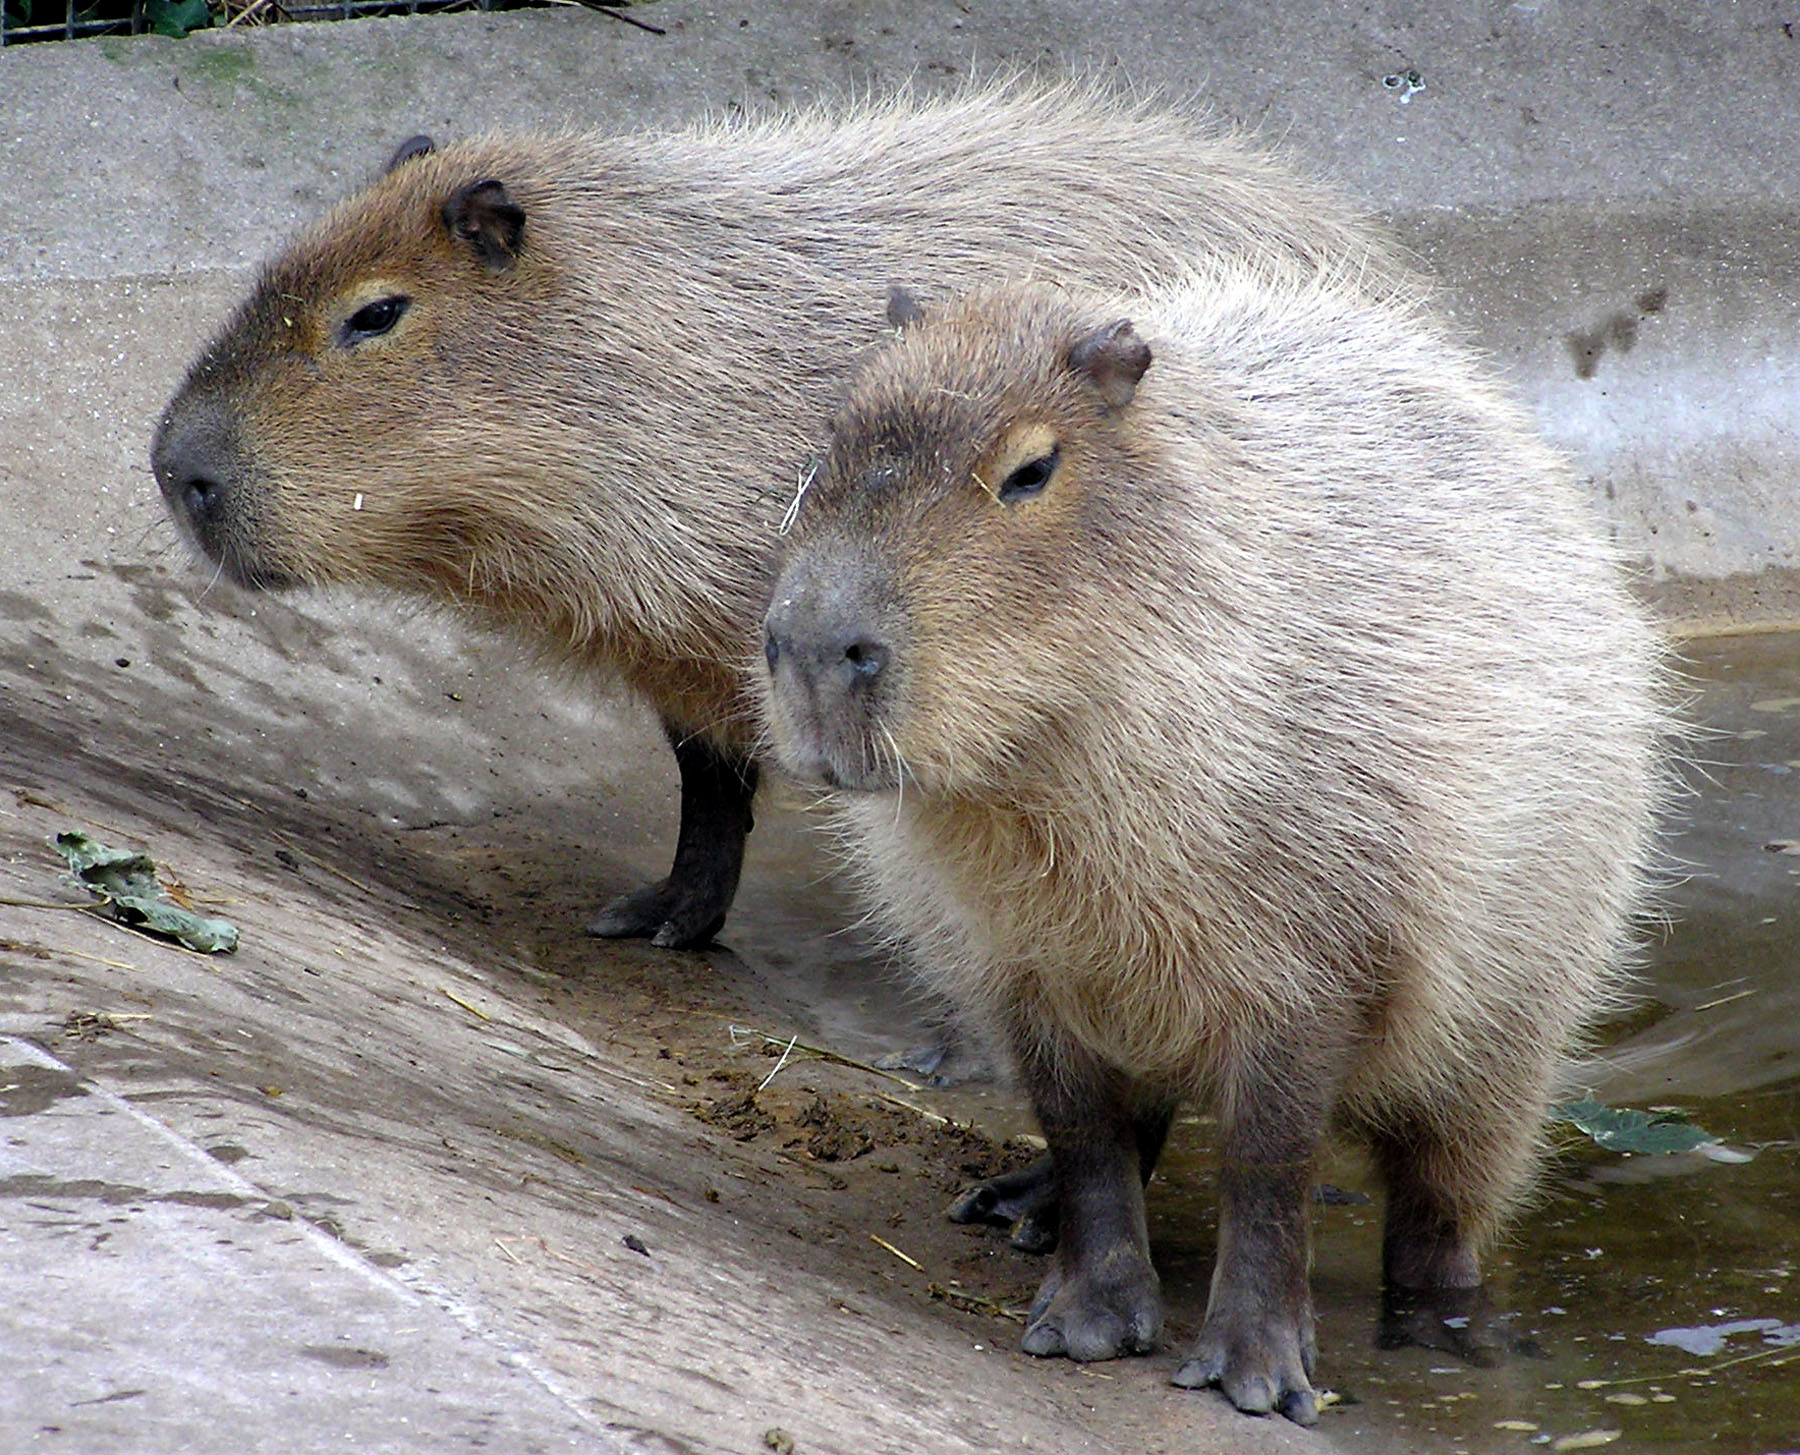 https://upload.wikimedia.org/wikipedia/commons/b/bc/Bristol.zoo.capybara.arp.jpg